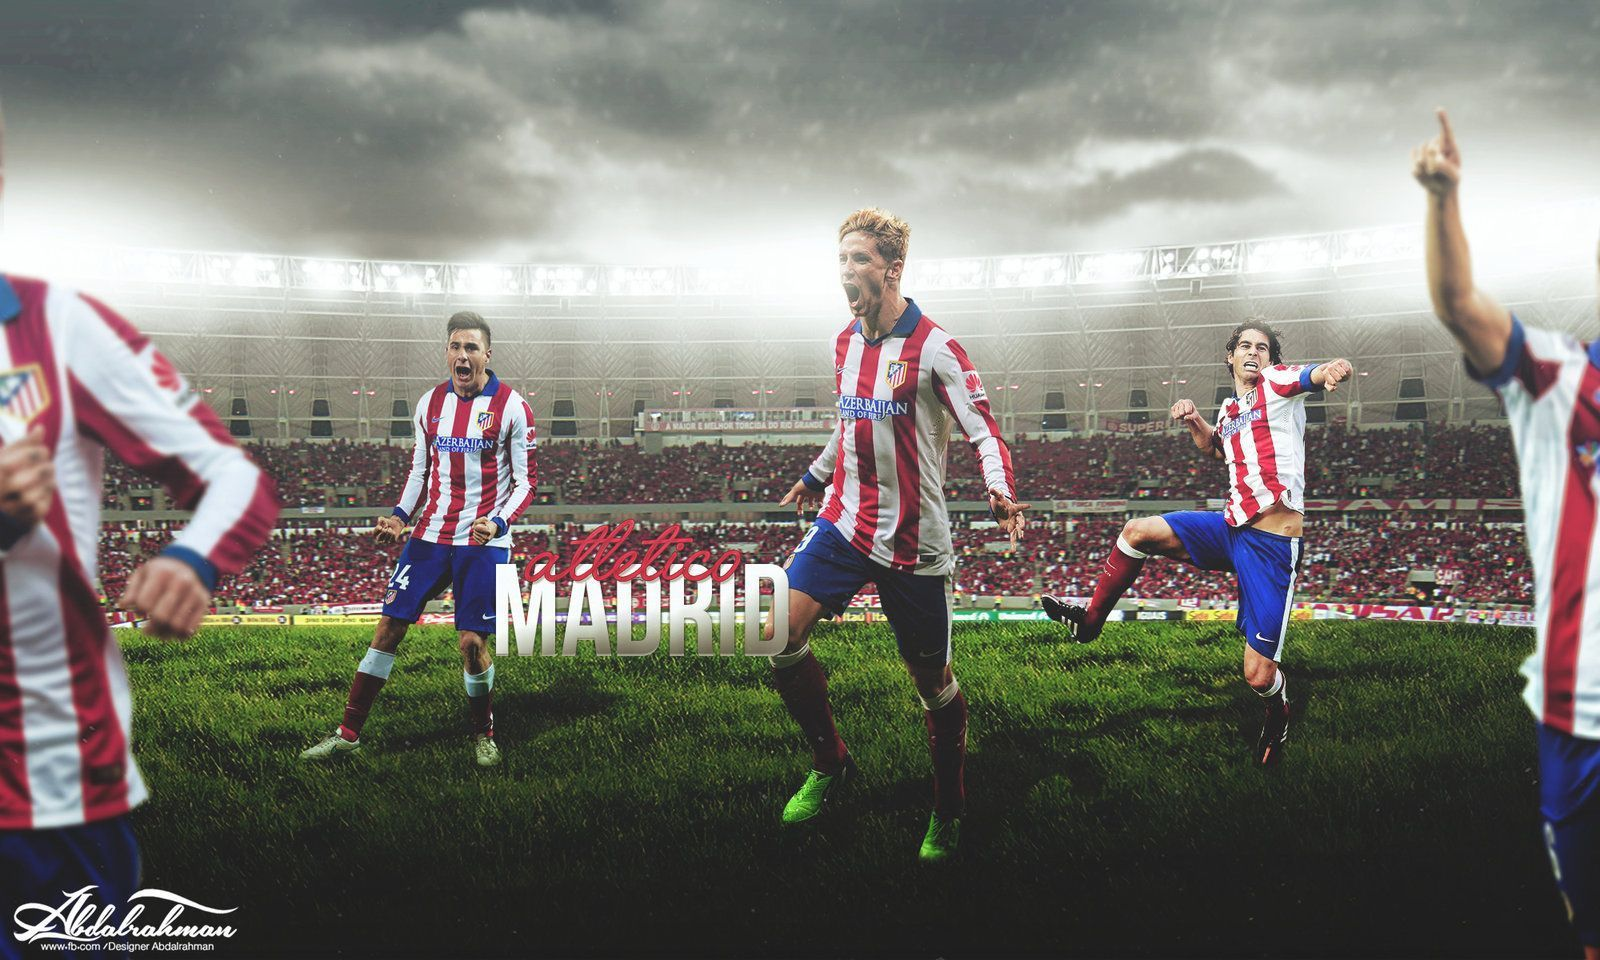 Atletico madrid high resolution backgrounds atletico madrid pics voltagebd Gallery